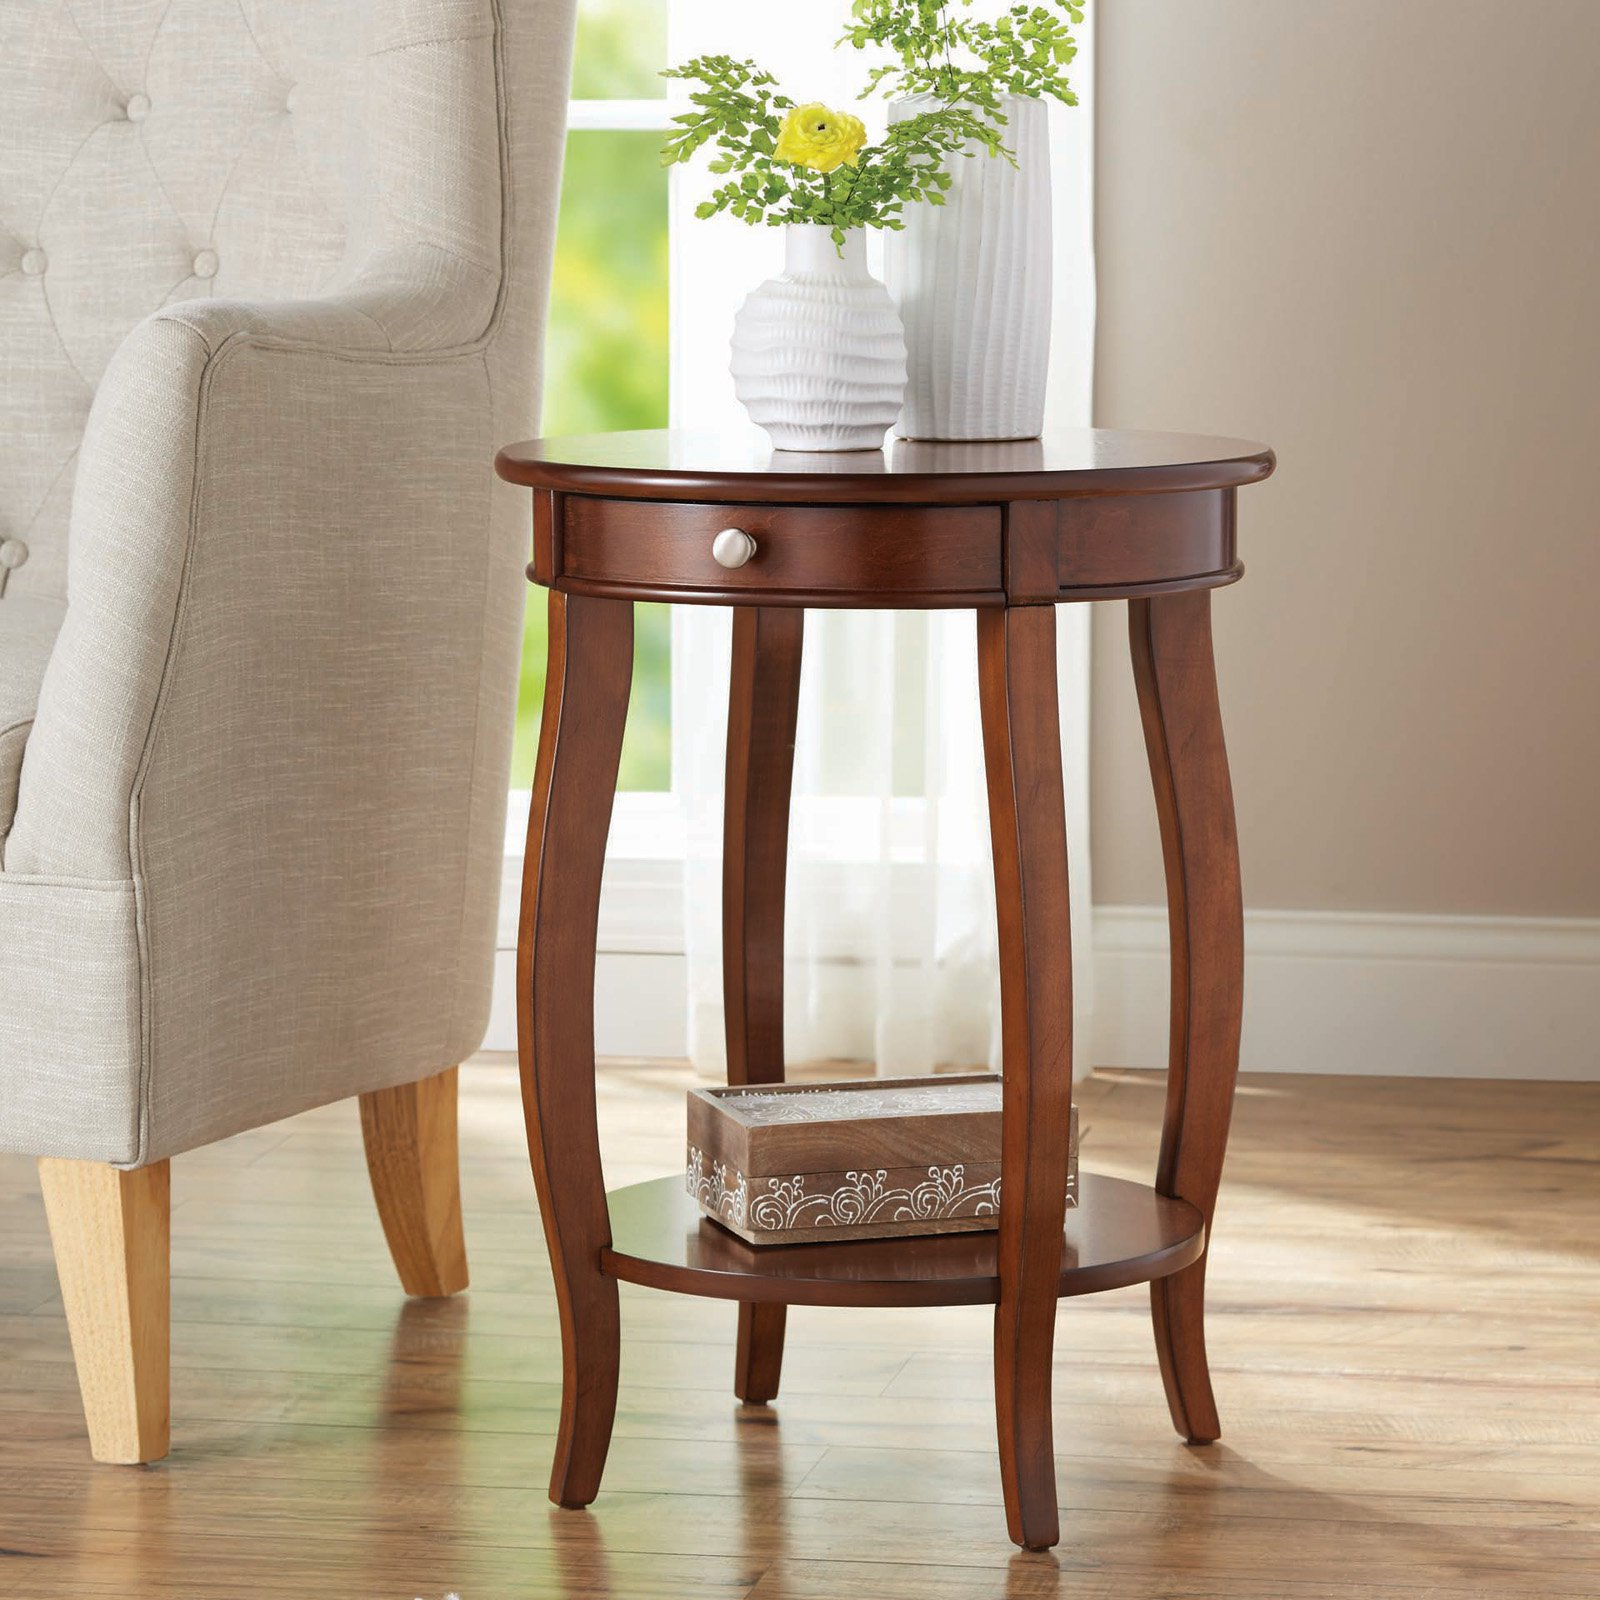 better homes gardens round accent table with drawer multiple room essentials metal patio colors west elm mid century bedside antique oak tables cherry wood dining small teak side